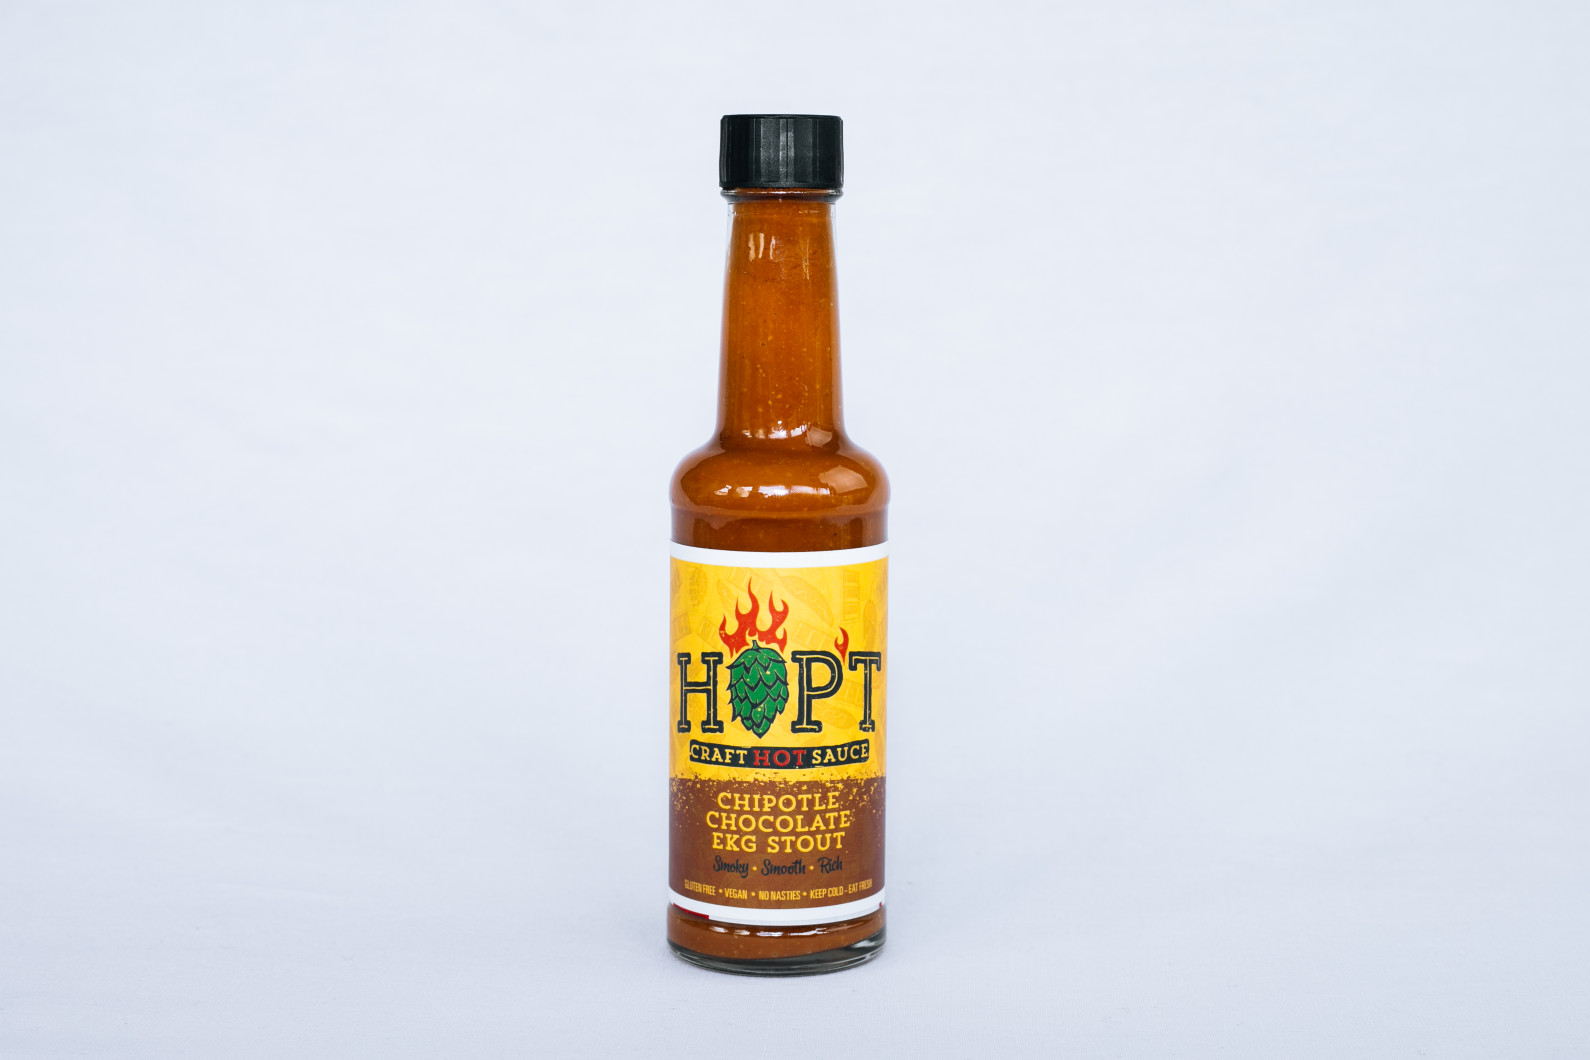 Bottle of Hopt sauce - Food product photography